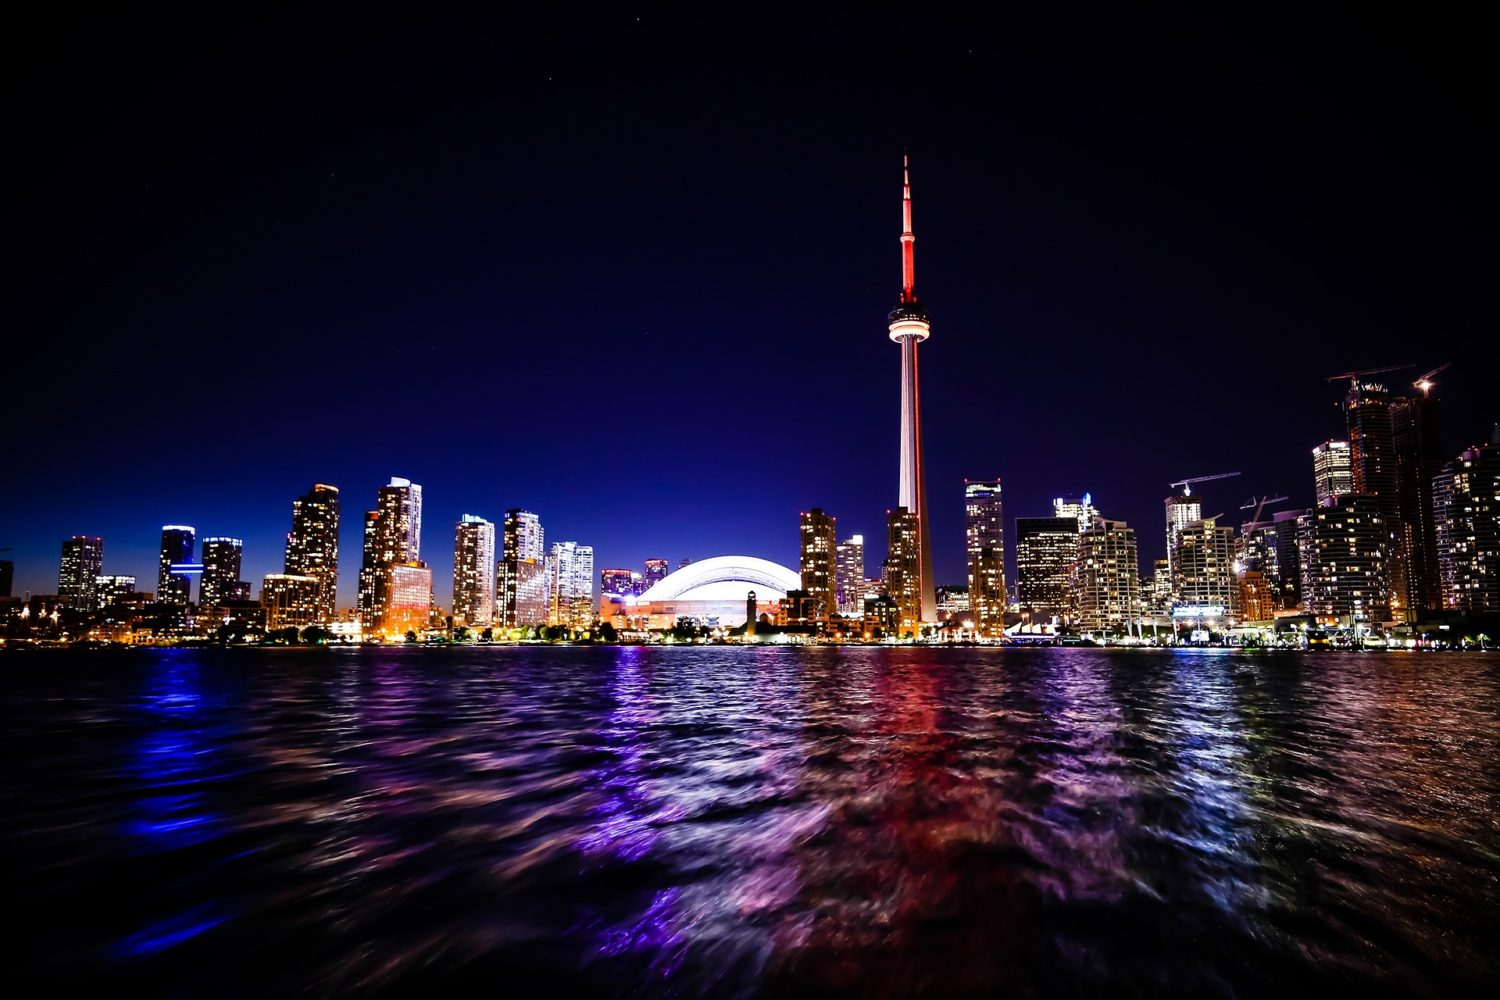 Toronto, Canada at night with the CN Tower